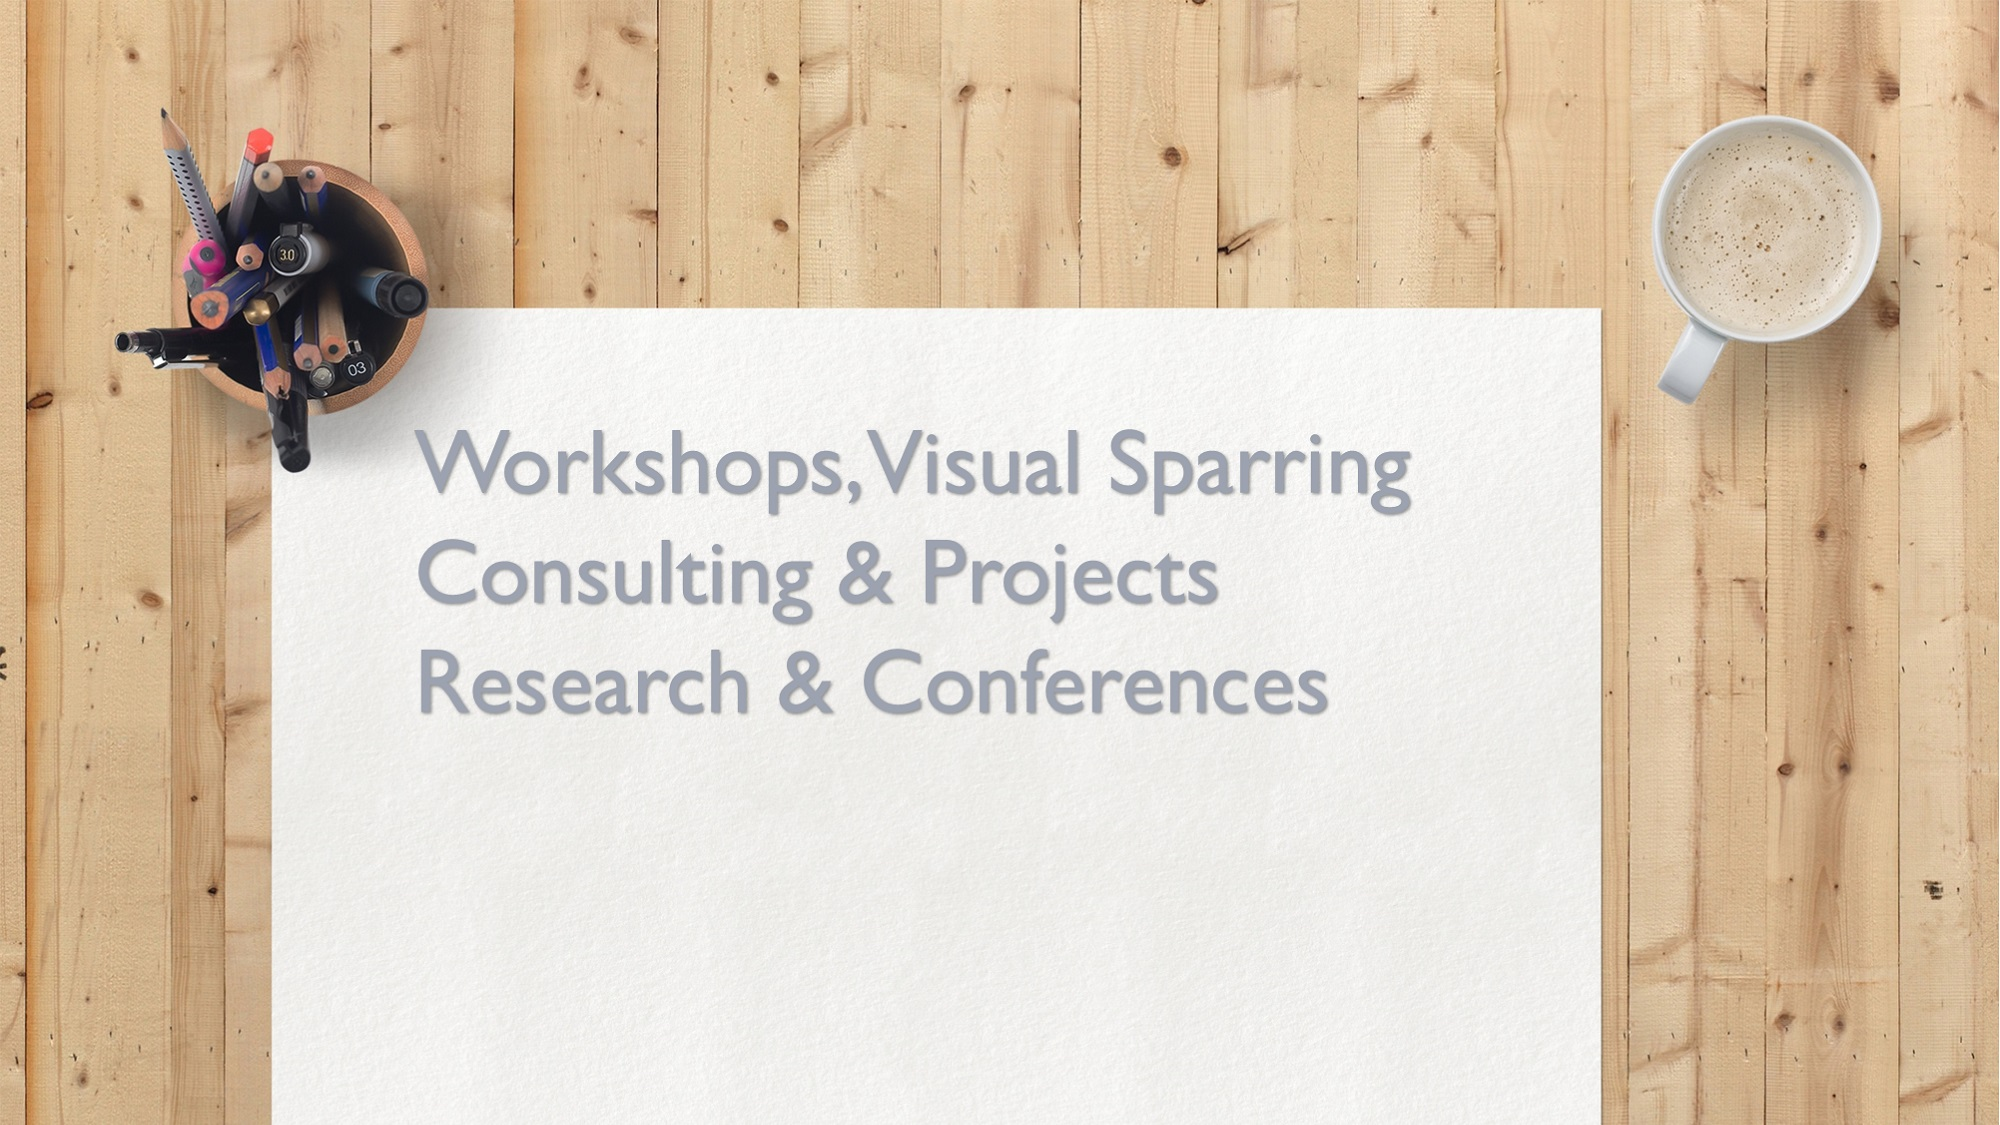 Visual Collaboration Lab, pinnwall, headings (workshop, visual sparring, consulting and projects, research and conferences)